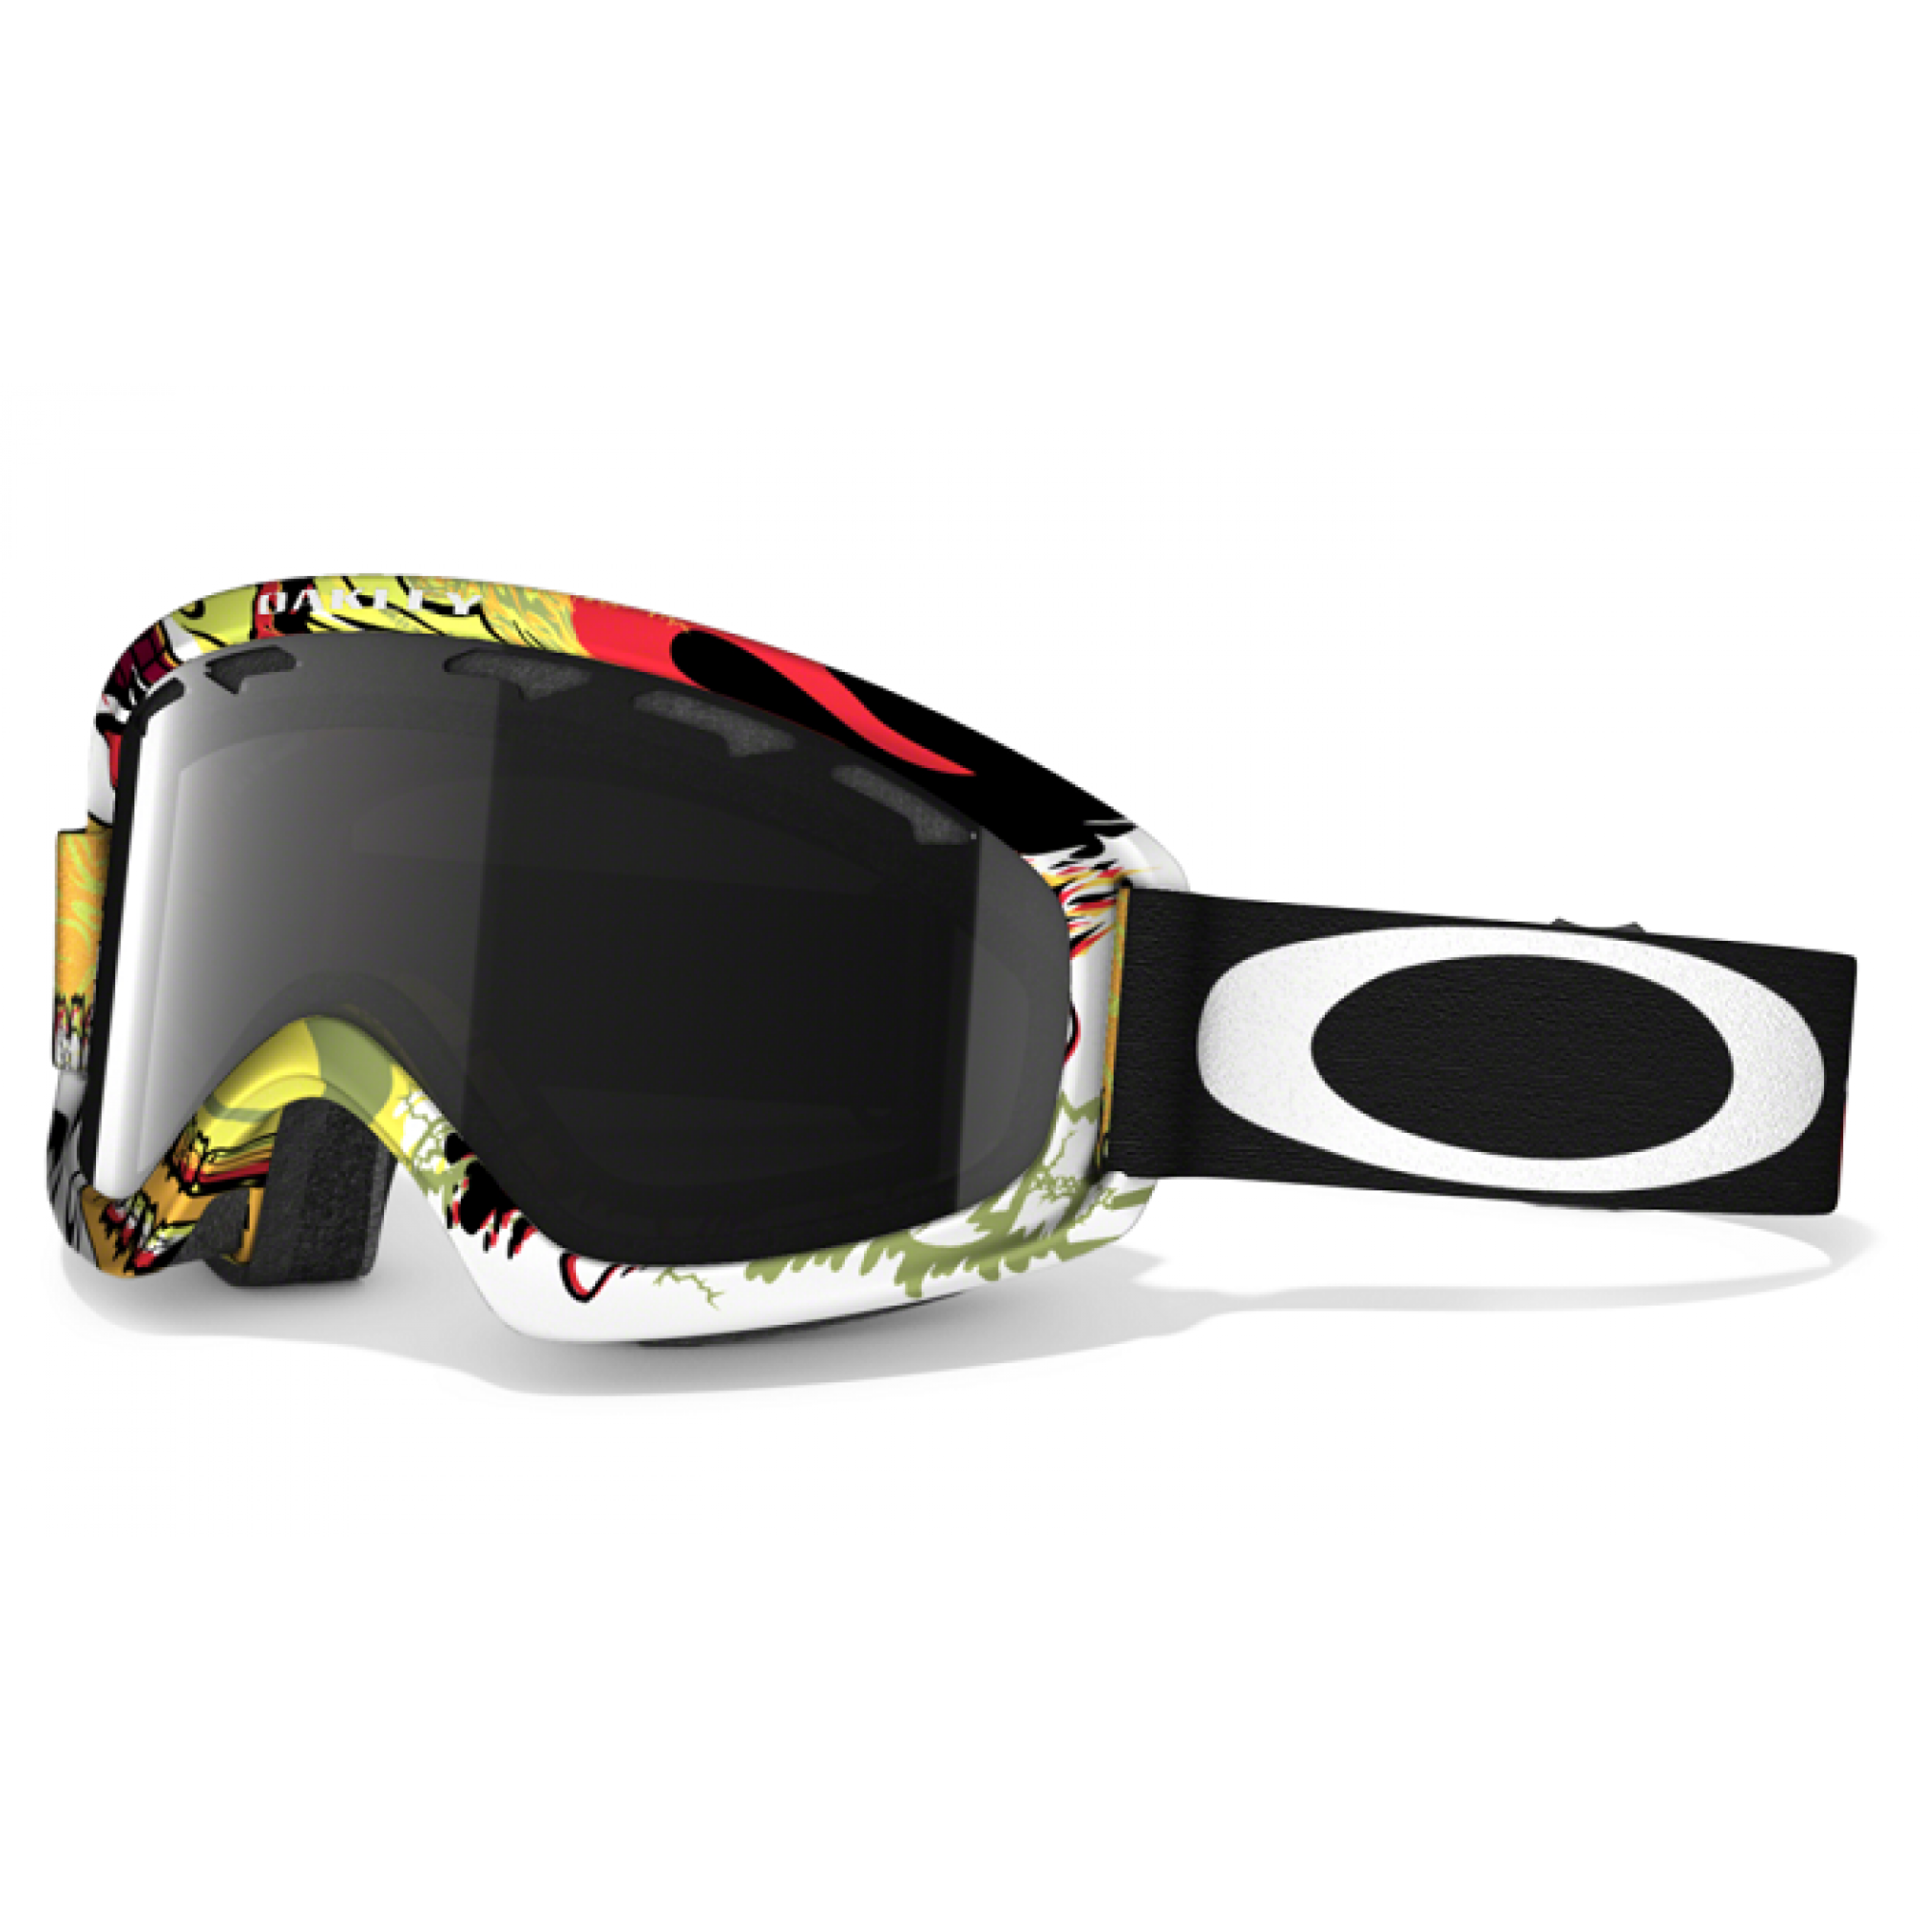 OAKLEY O2 XS MOUTAIN MONSTER RED DARK GREY